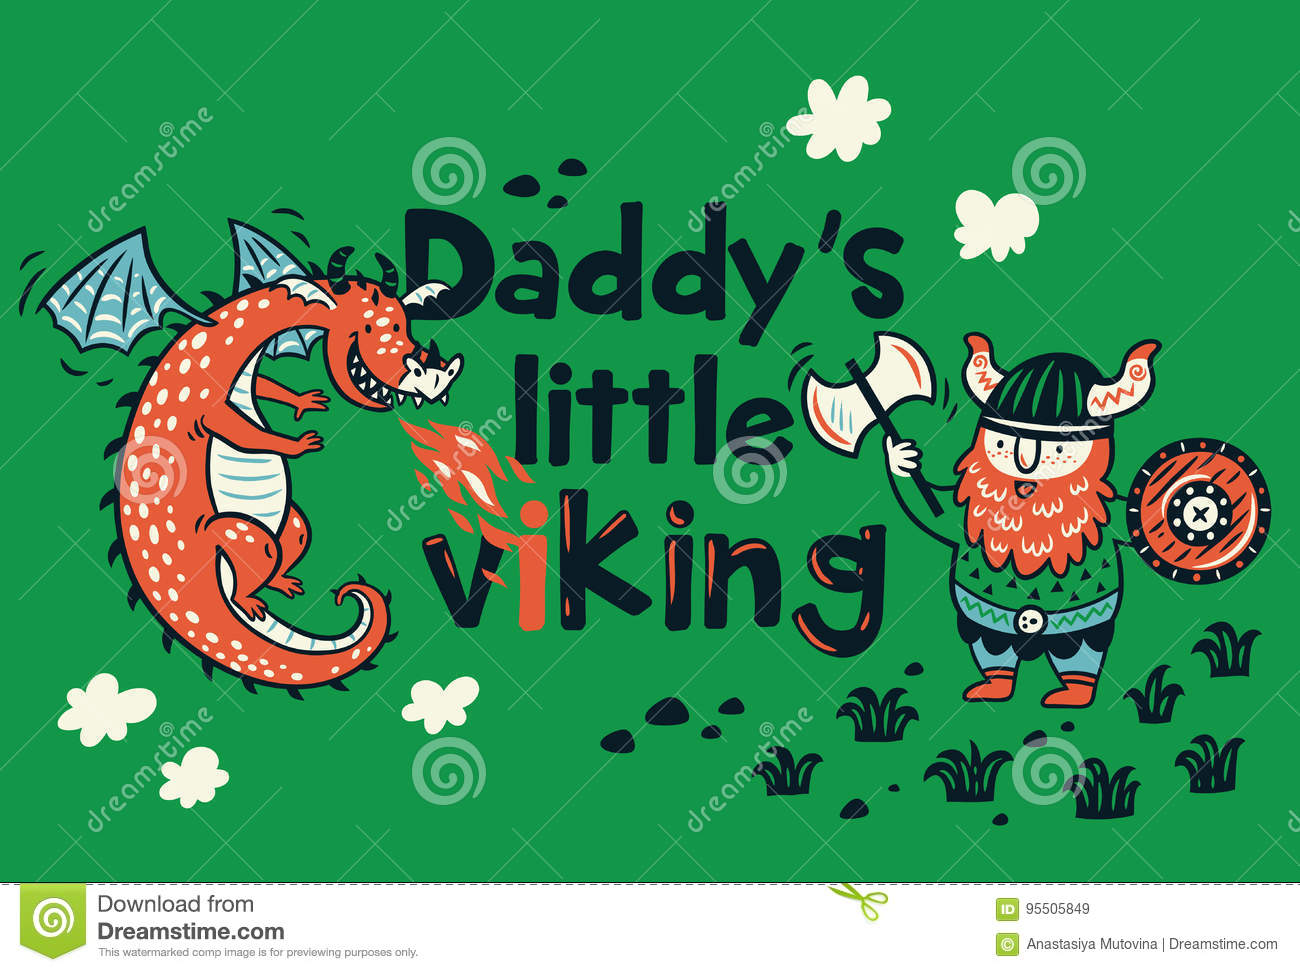 1e56a2a6 Daddys Little Viking Print For Childrens Clothing Stock Vector ...